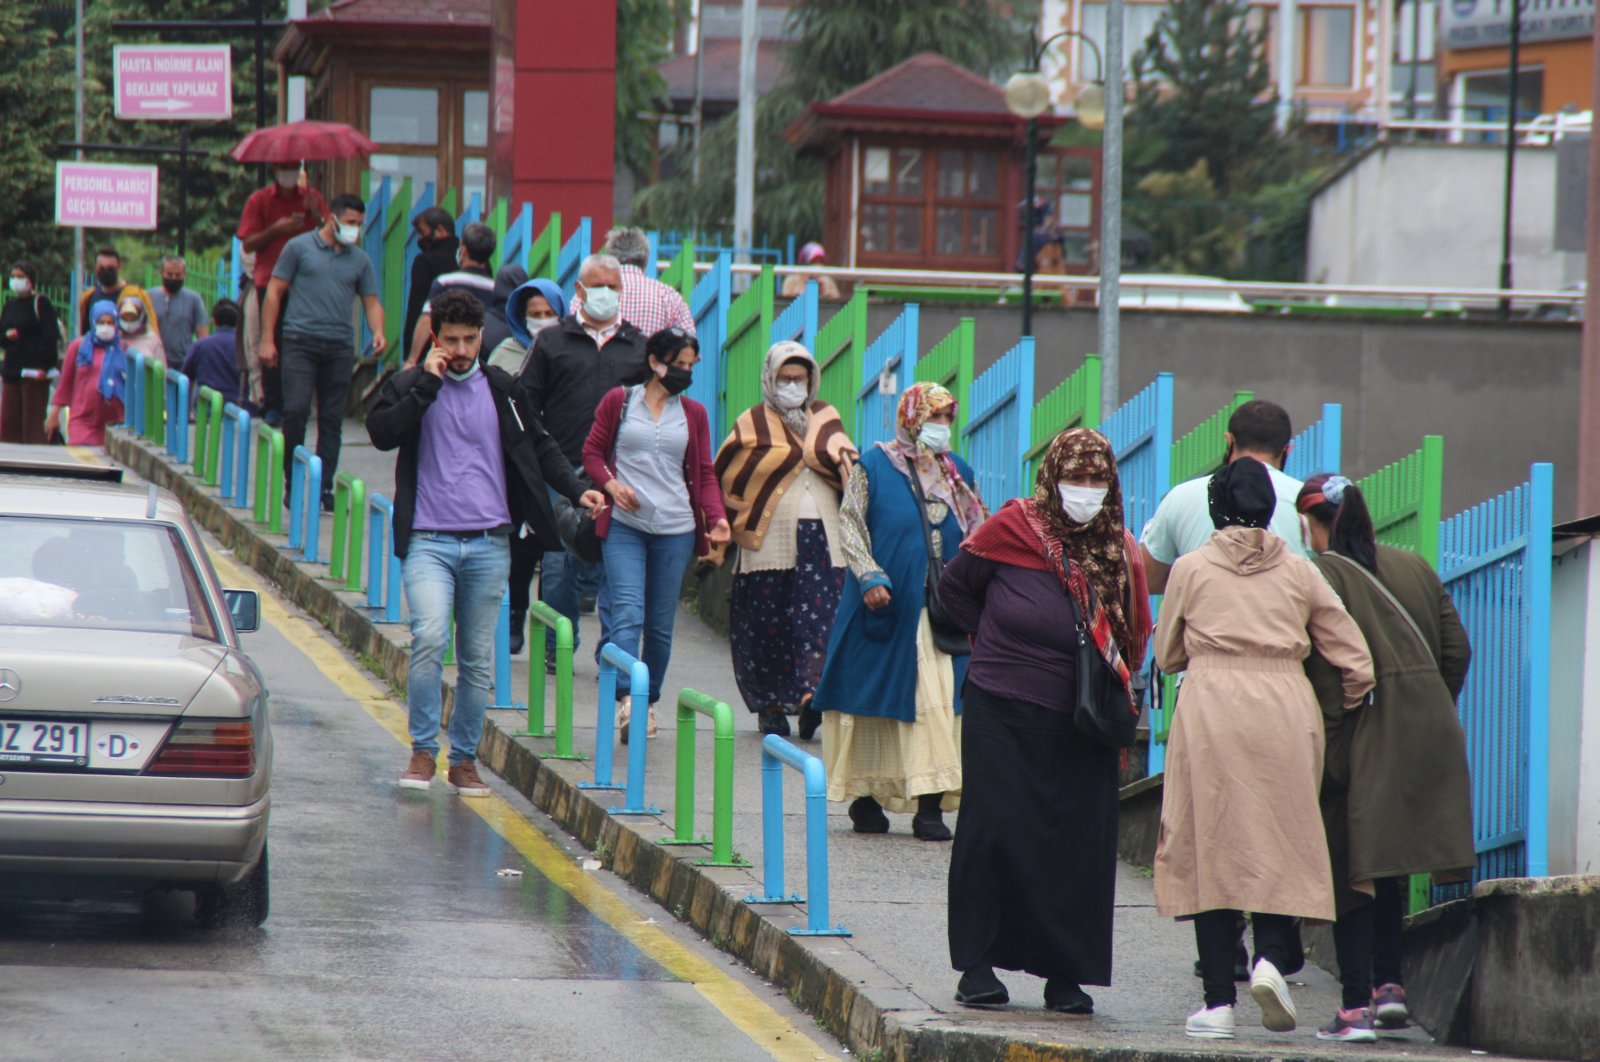 People wearing protective masks walk on a street, in Rize, northern Turkey, Sept. 6, 2021. (DHA PHOTO)